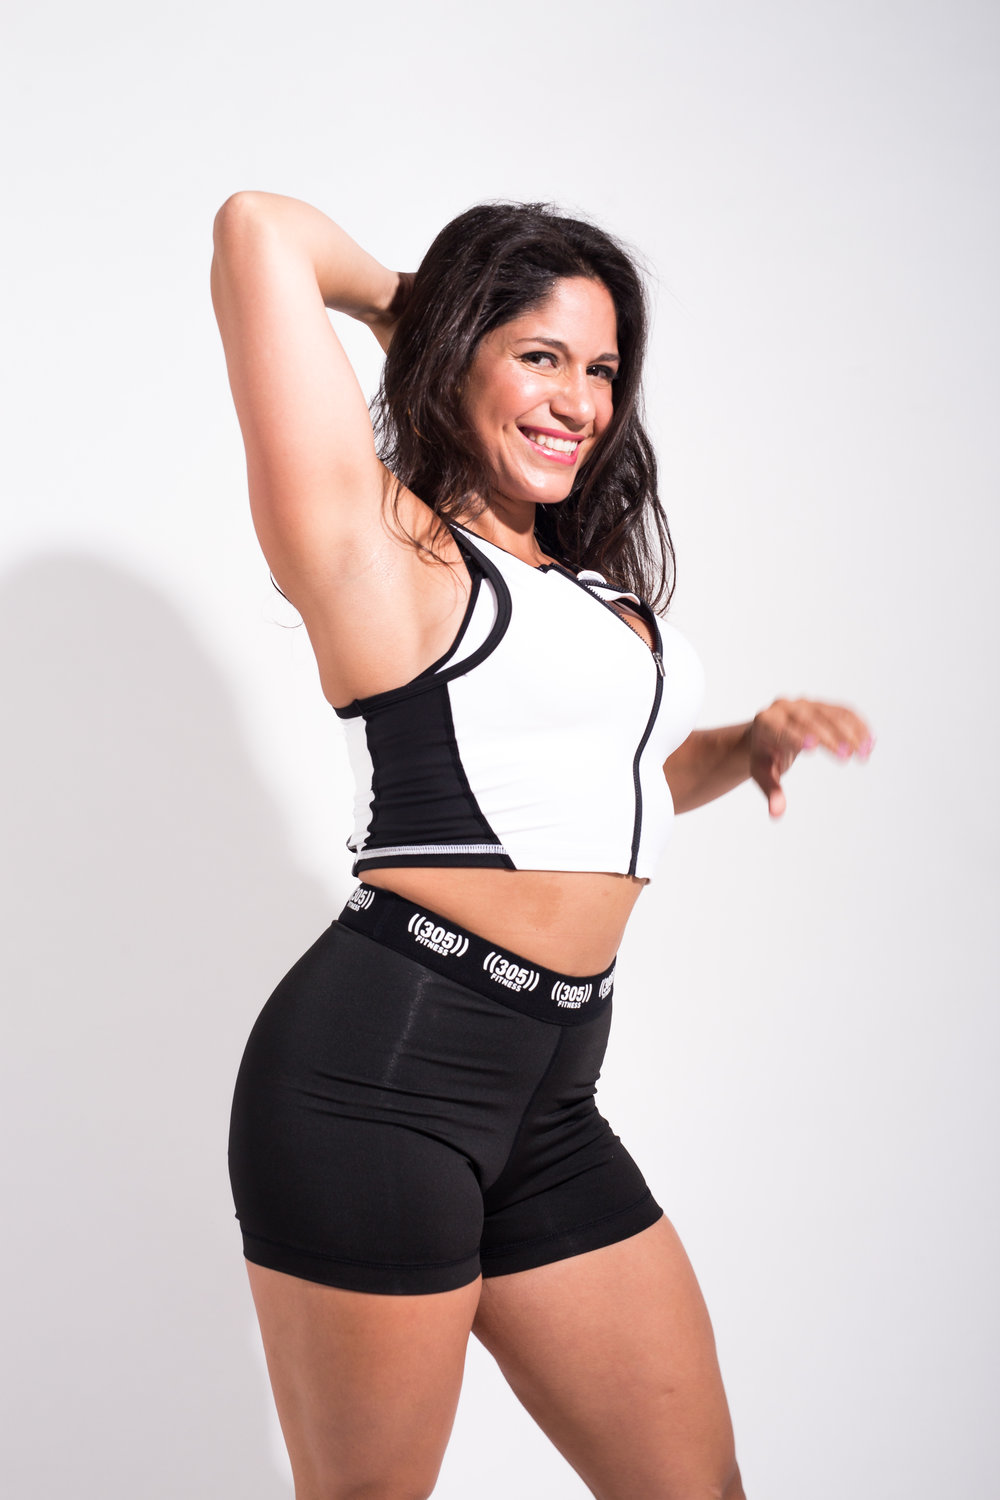 305 Fitness Instructor Diana